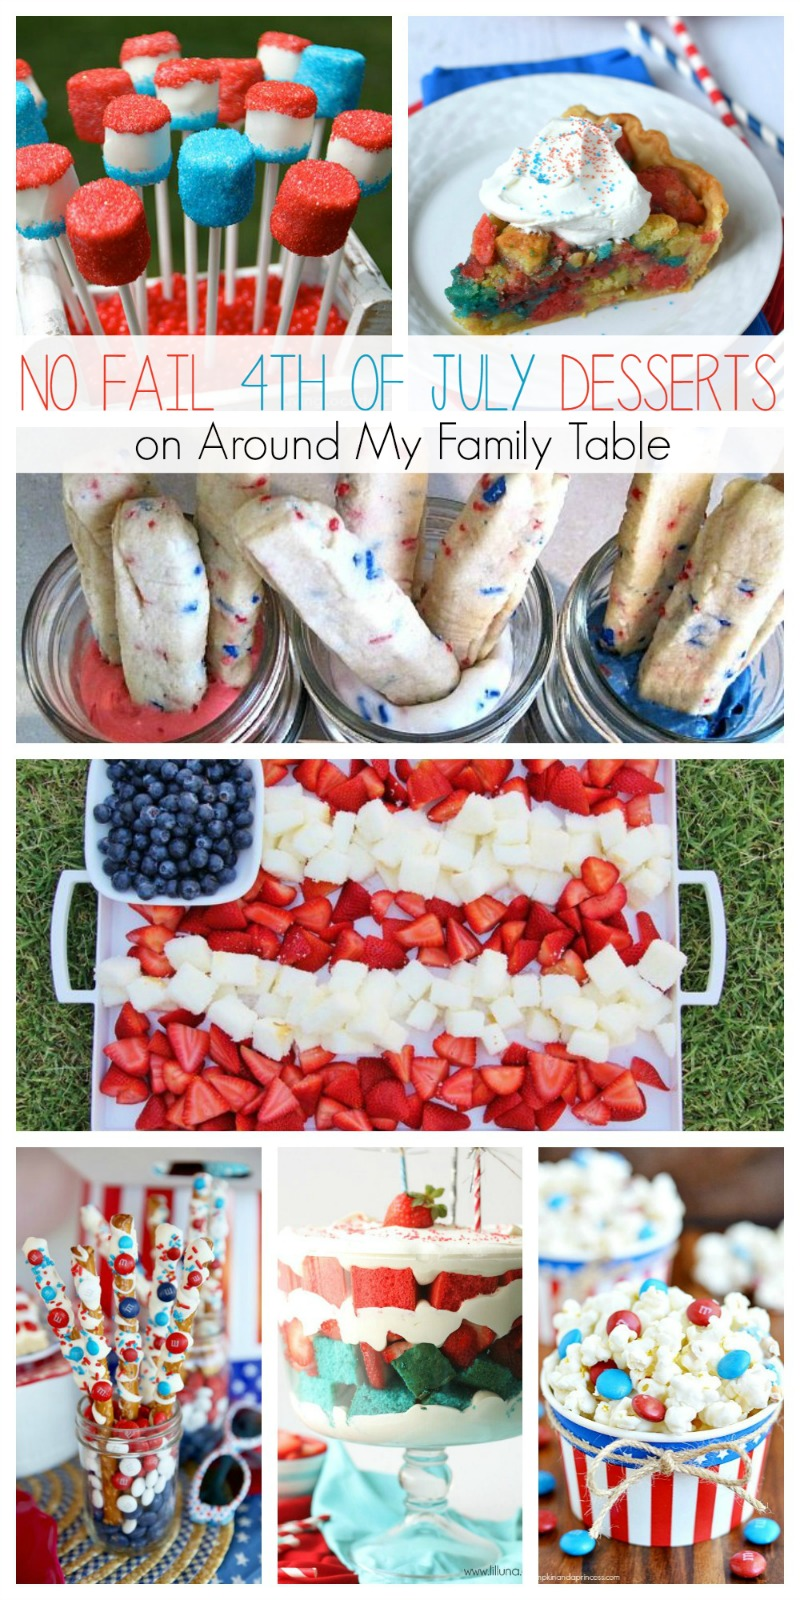 These 25 No Fail 4th of July Desserts are just what you need for a no hassle and fun ending to your party!